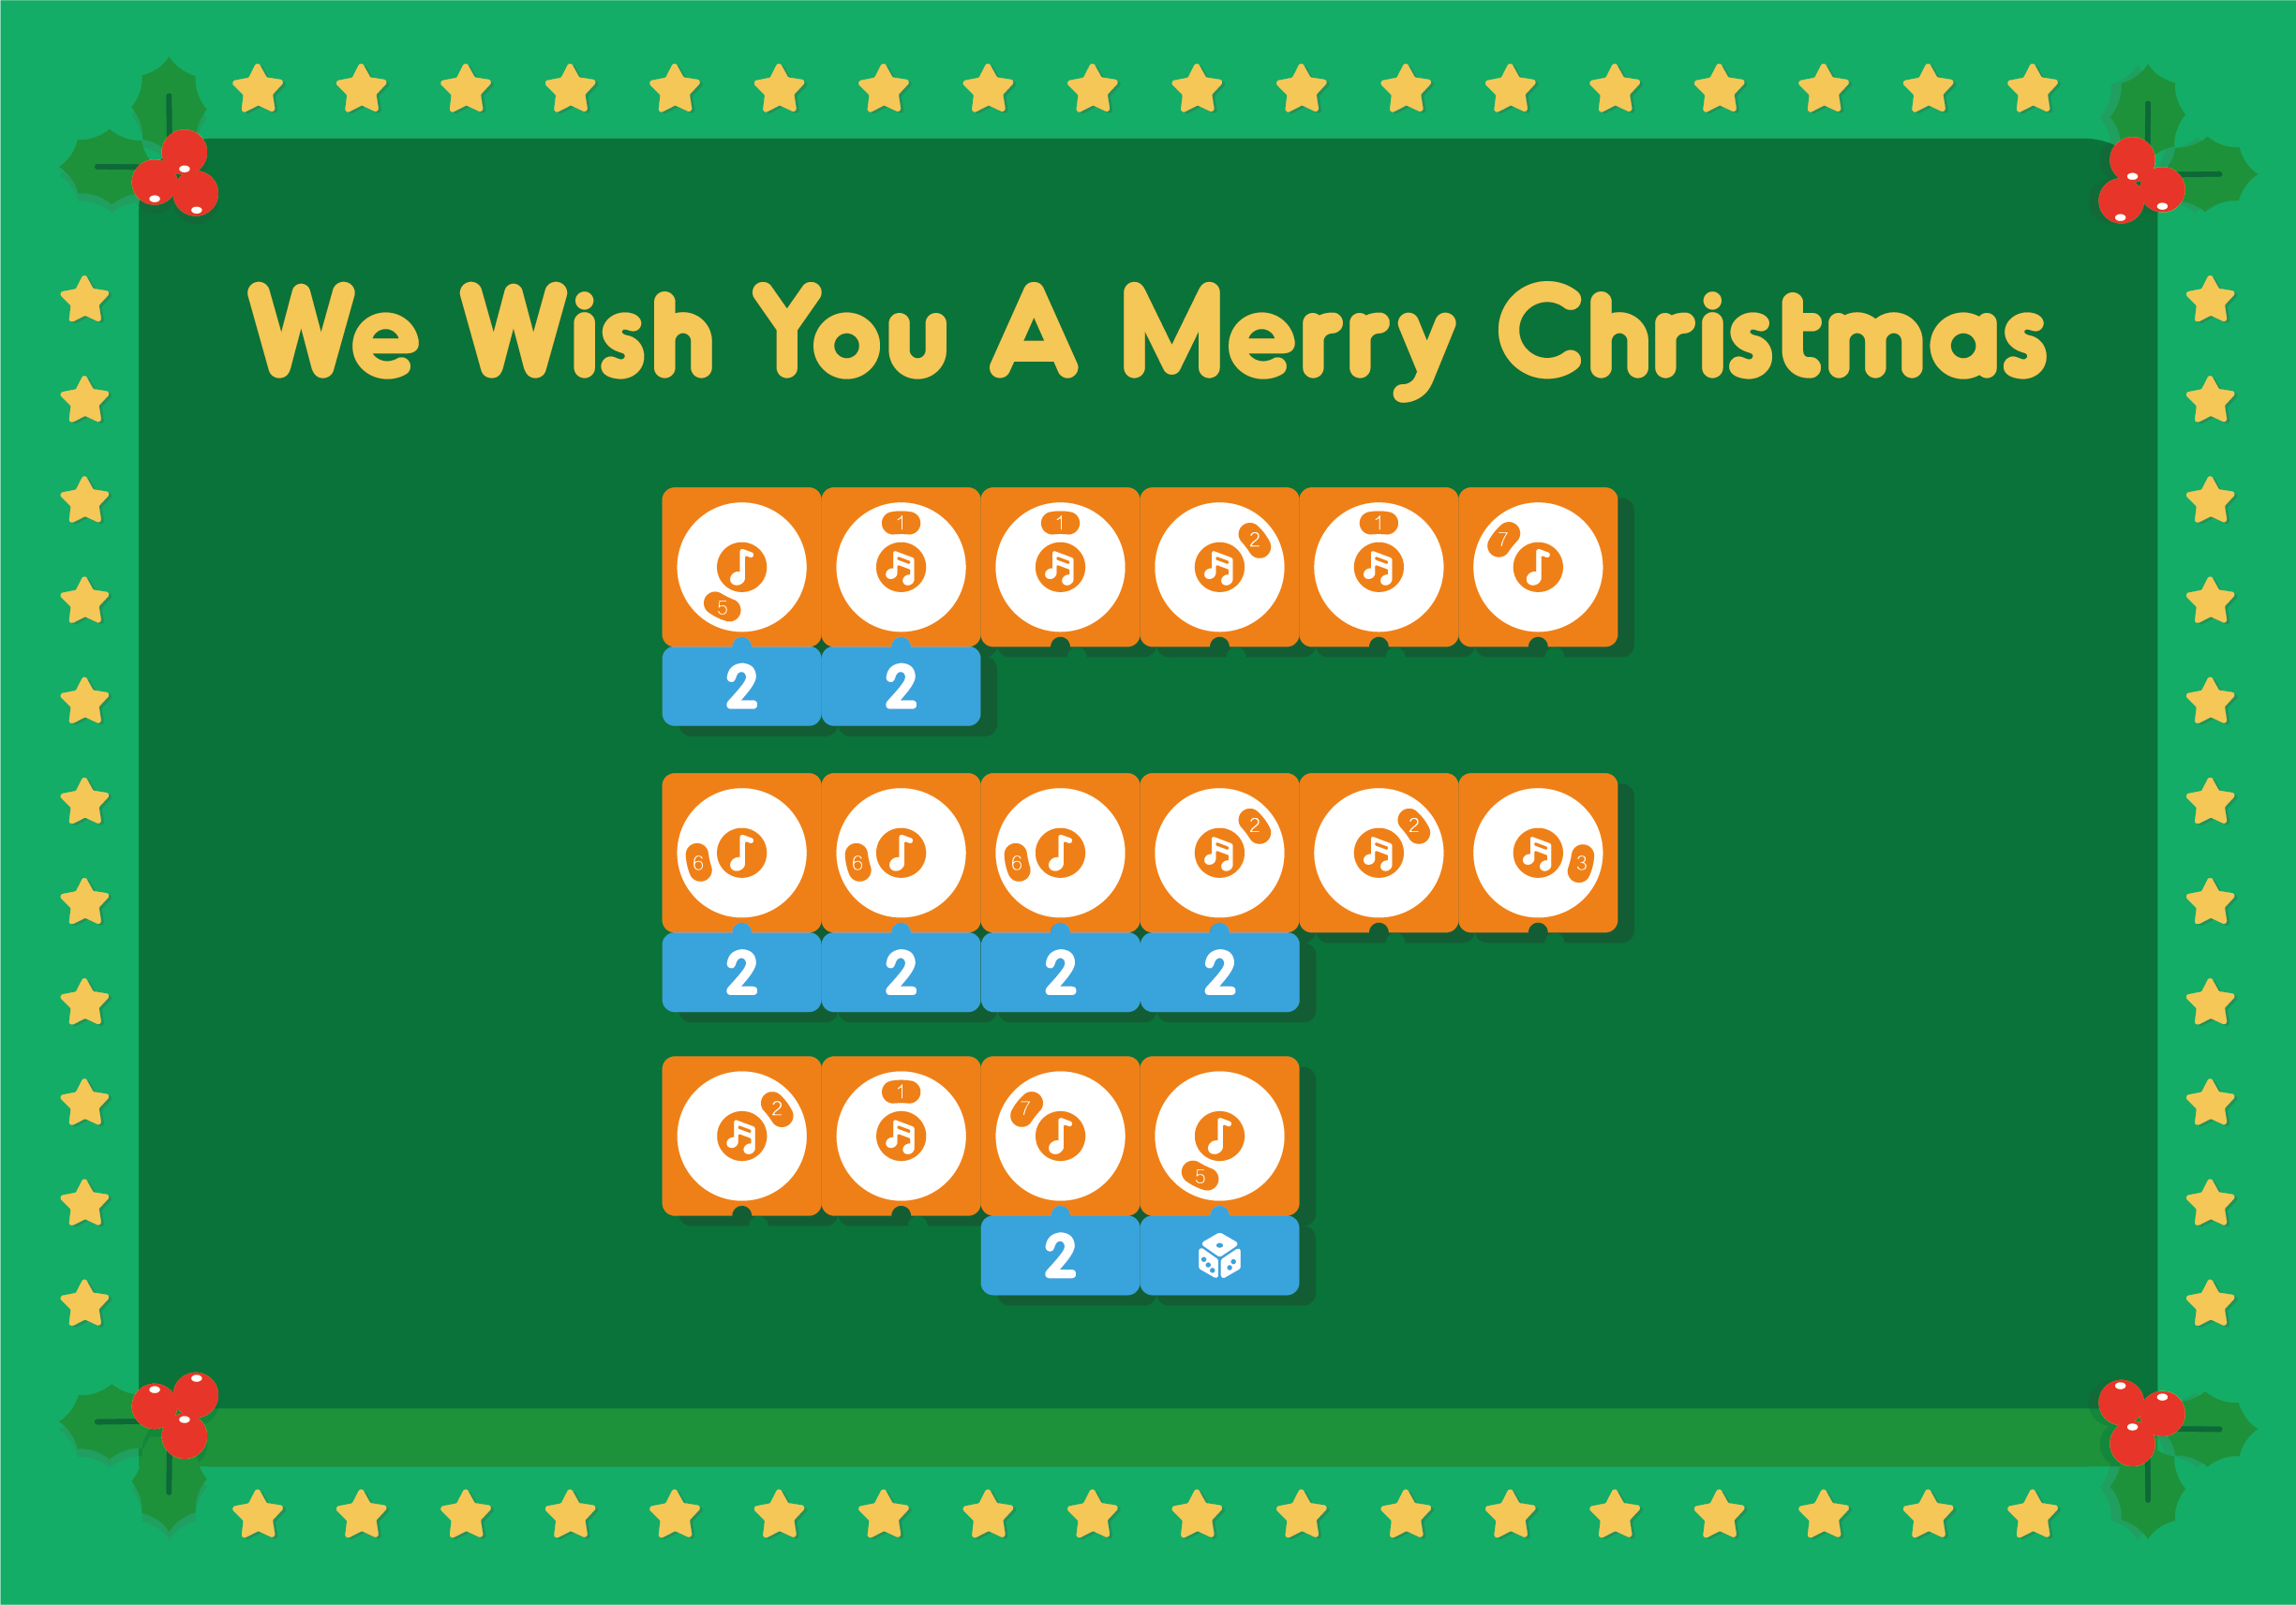 We Wish You A Merry Christmas - Coding Toys - Matatalab